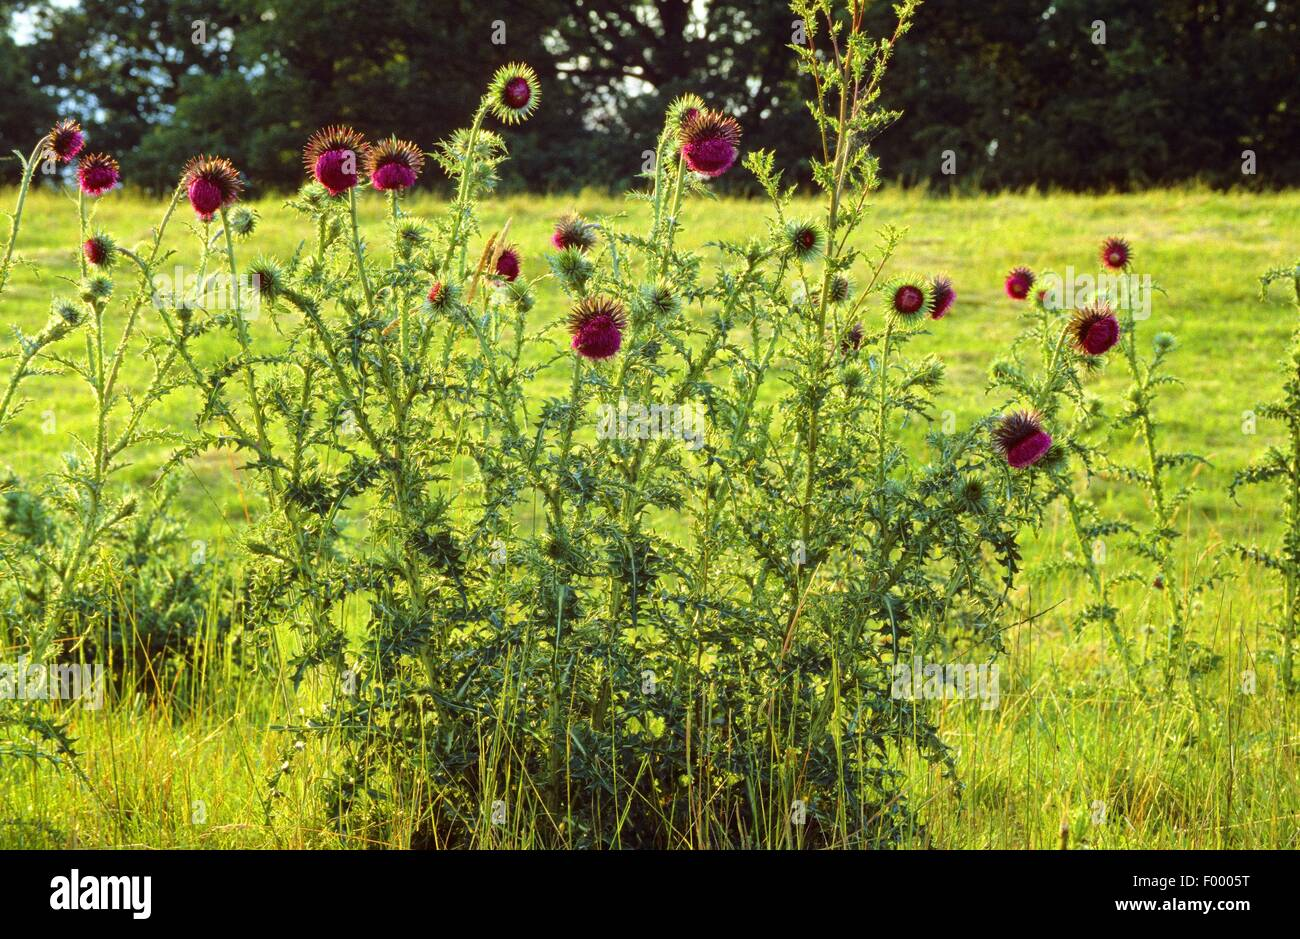 musk thistle, nodding thistle (Carduus nutans), blooming, Germany - Stock Image